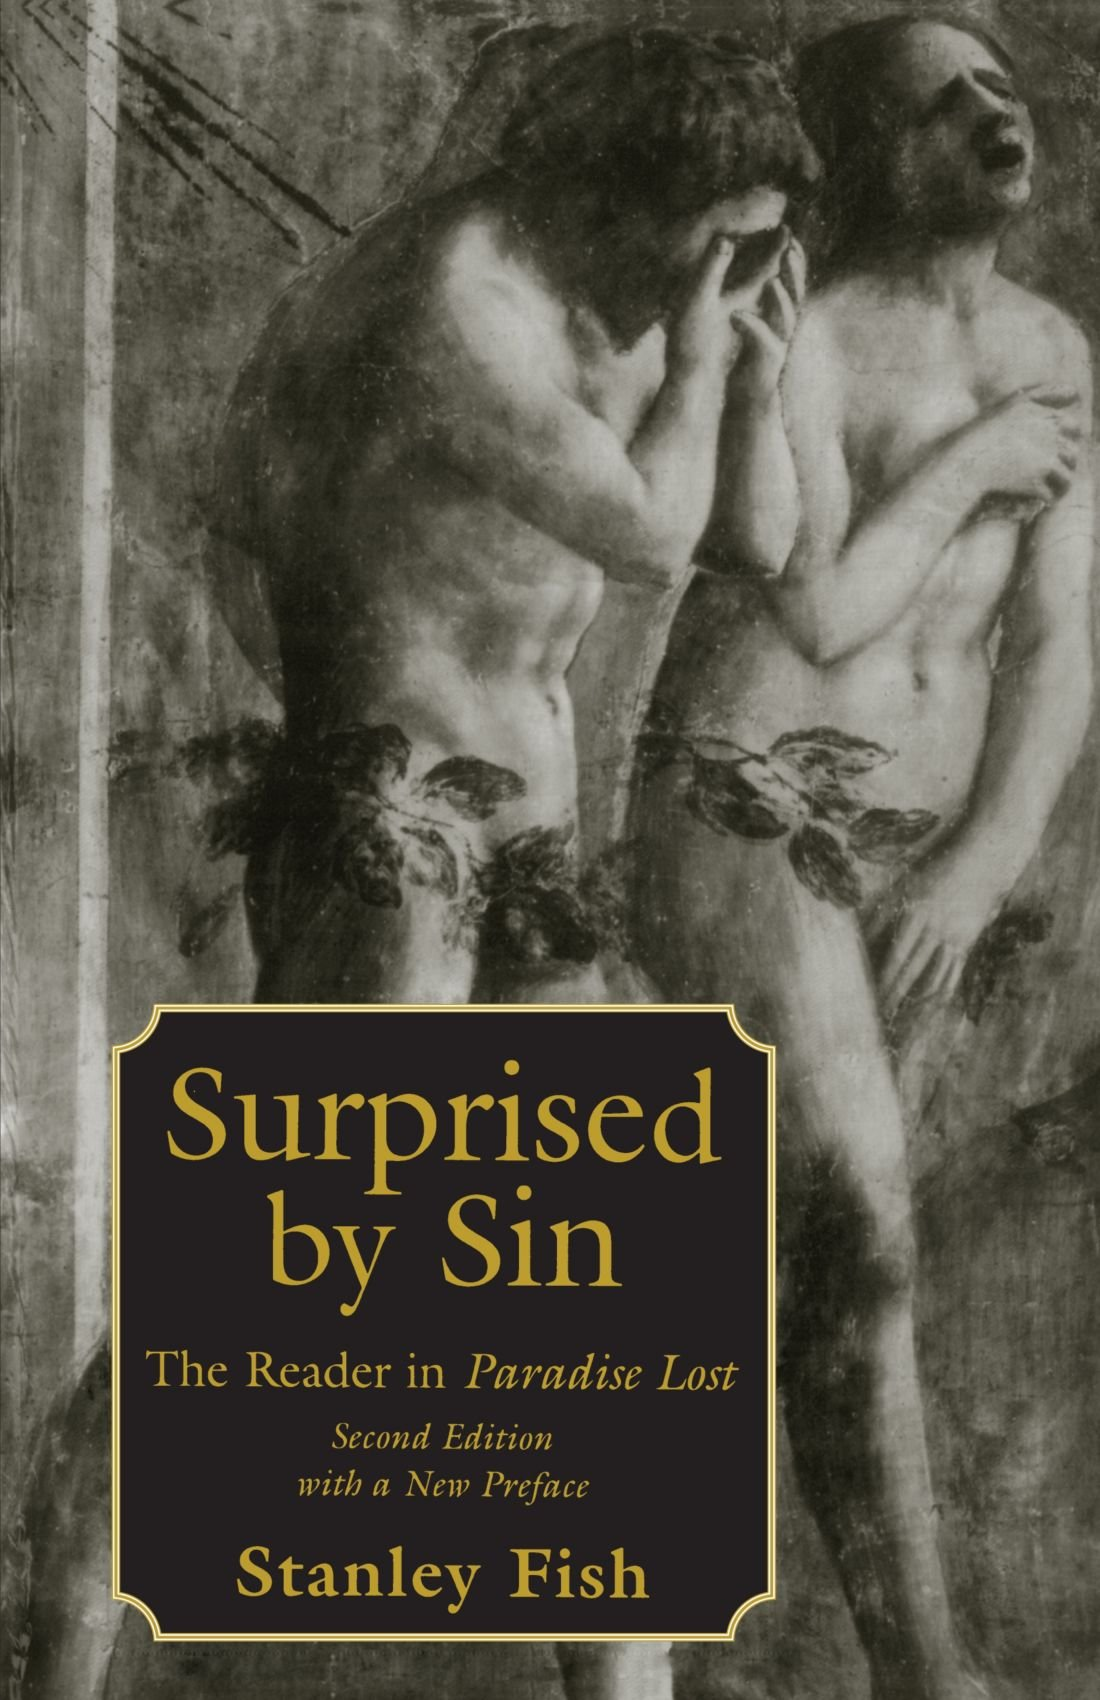 surprised by sin the reader in paradise lost amazon co uk surprised by sin the reader in paradise lost amazon co uk stanley fish 9780674857476 books